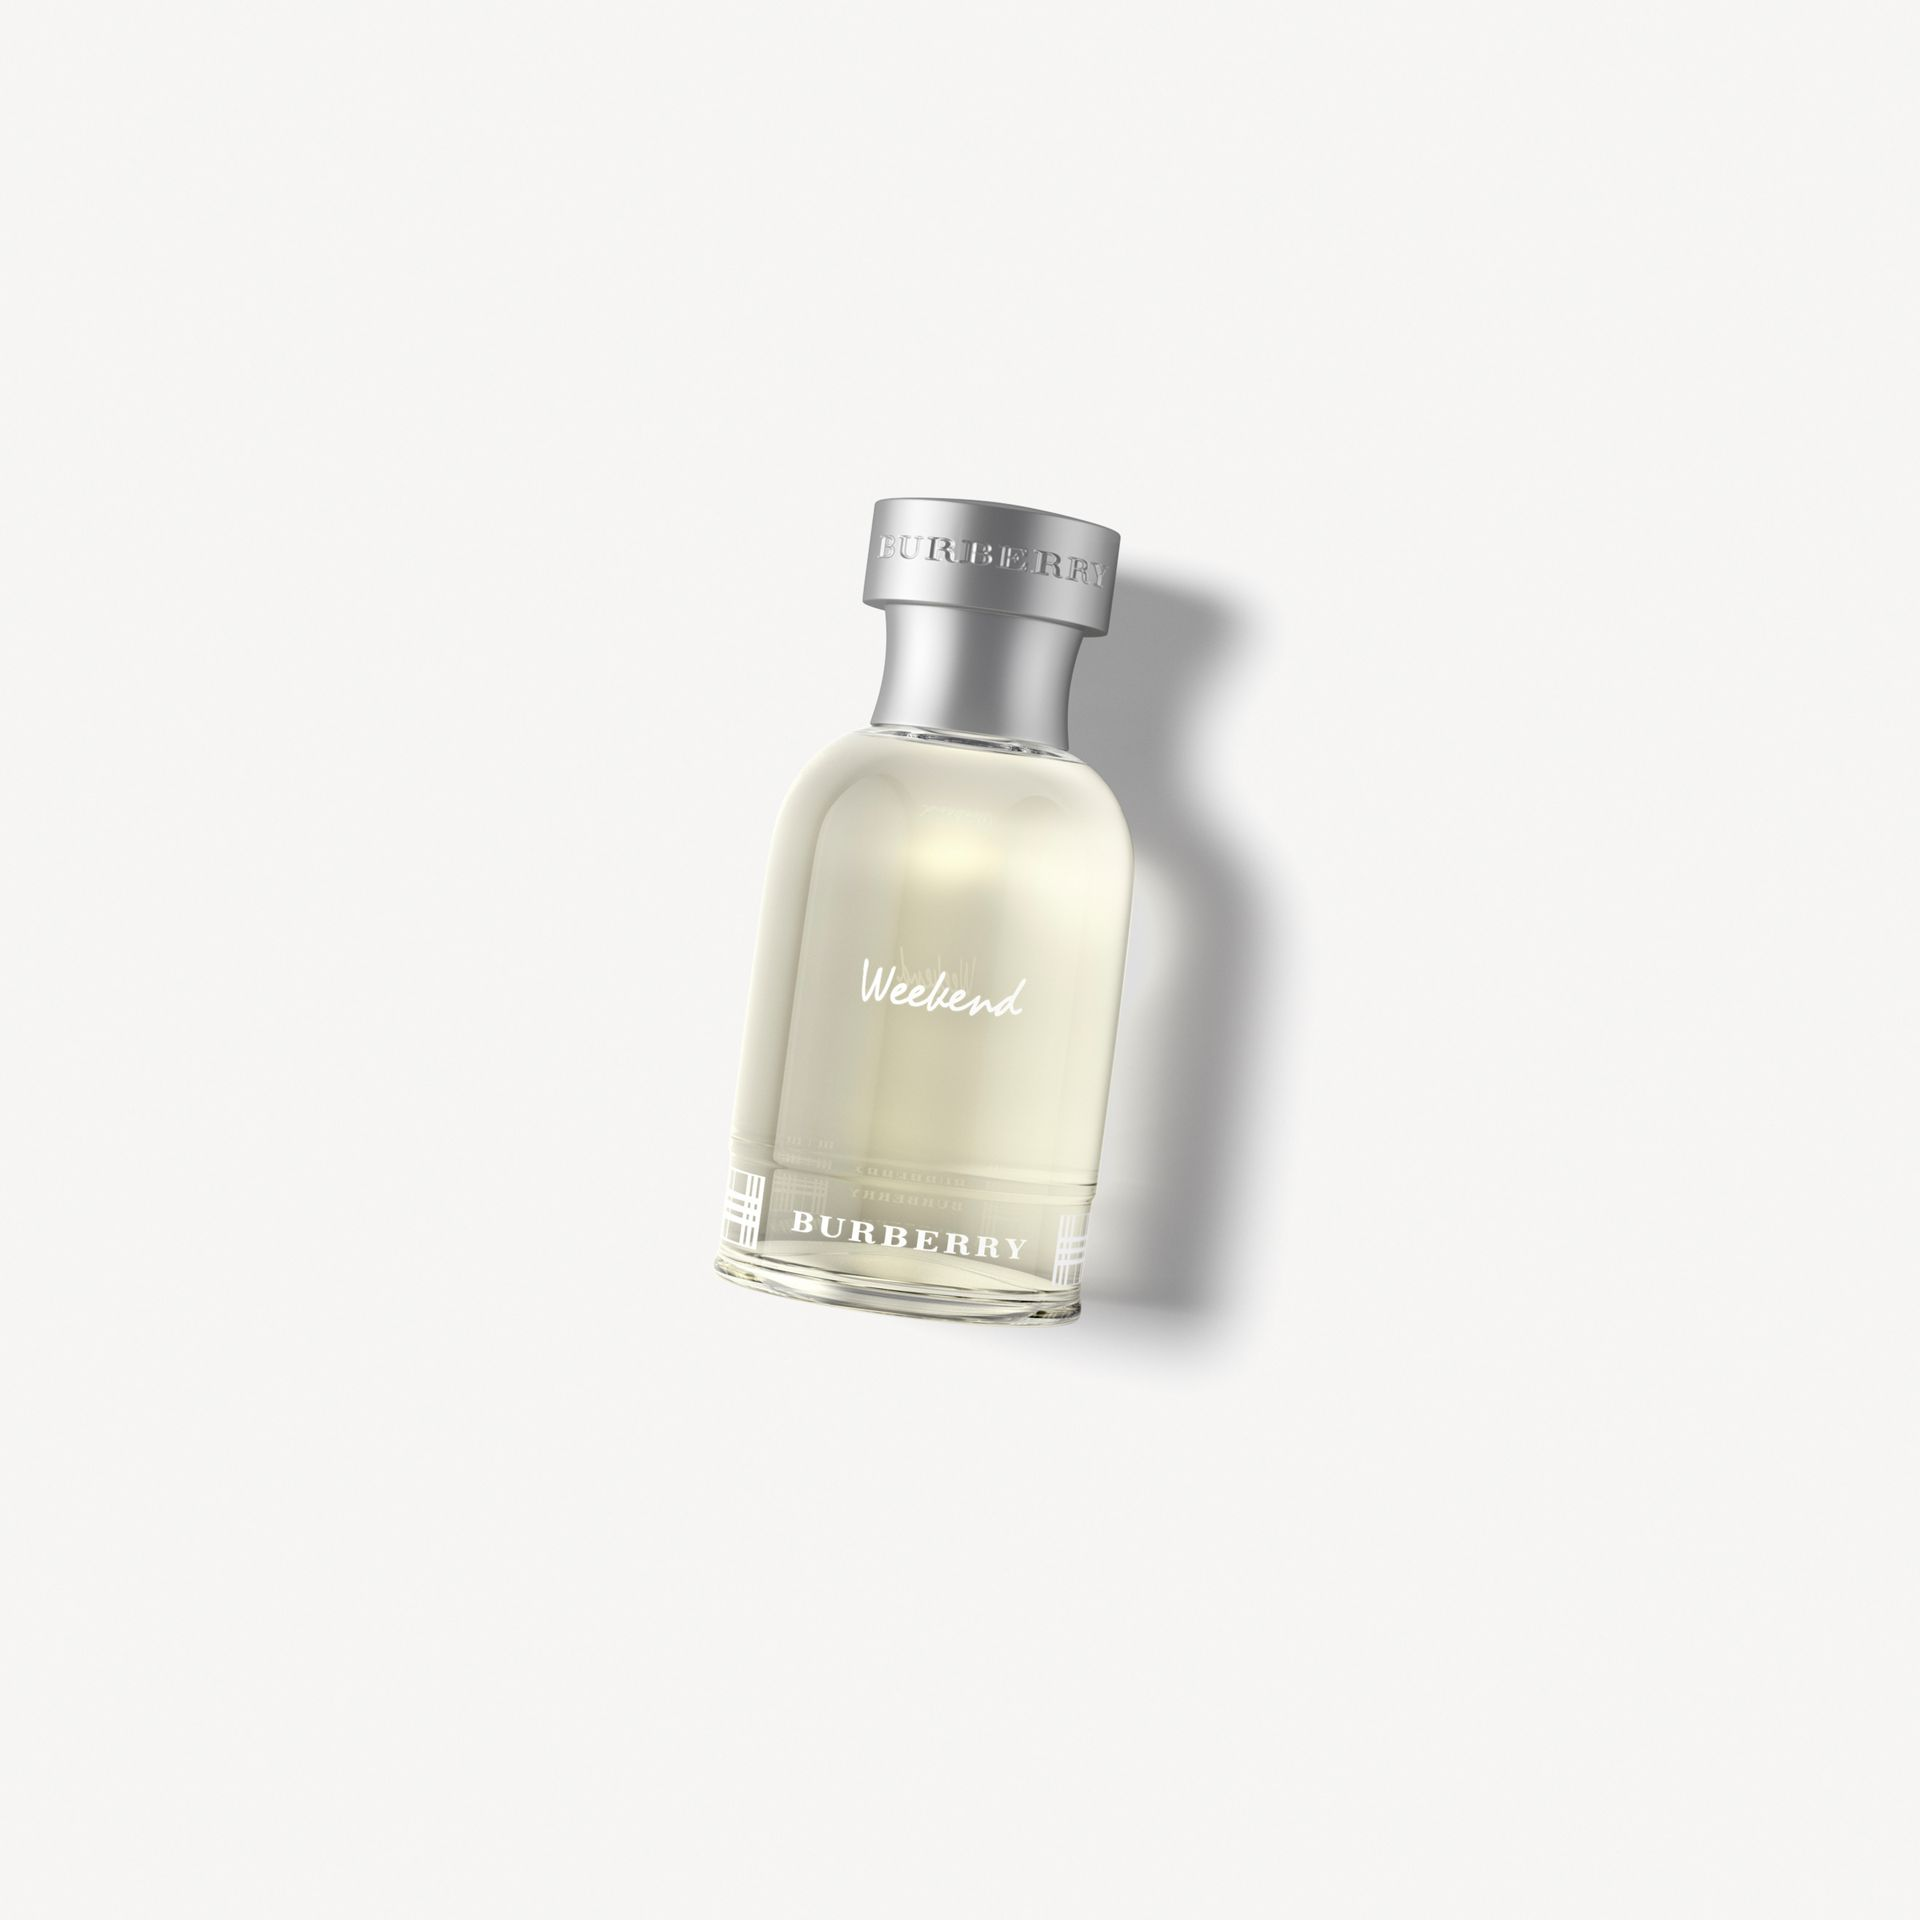 Burberry Weekend Eau de Toilette 50ml - Men | Burberry - gallery image 1